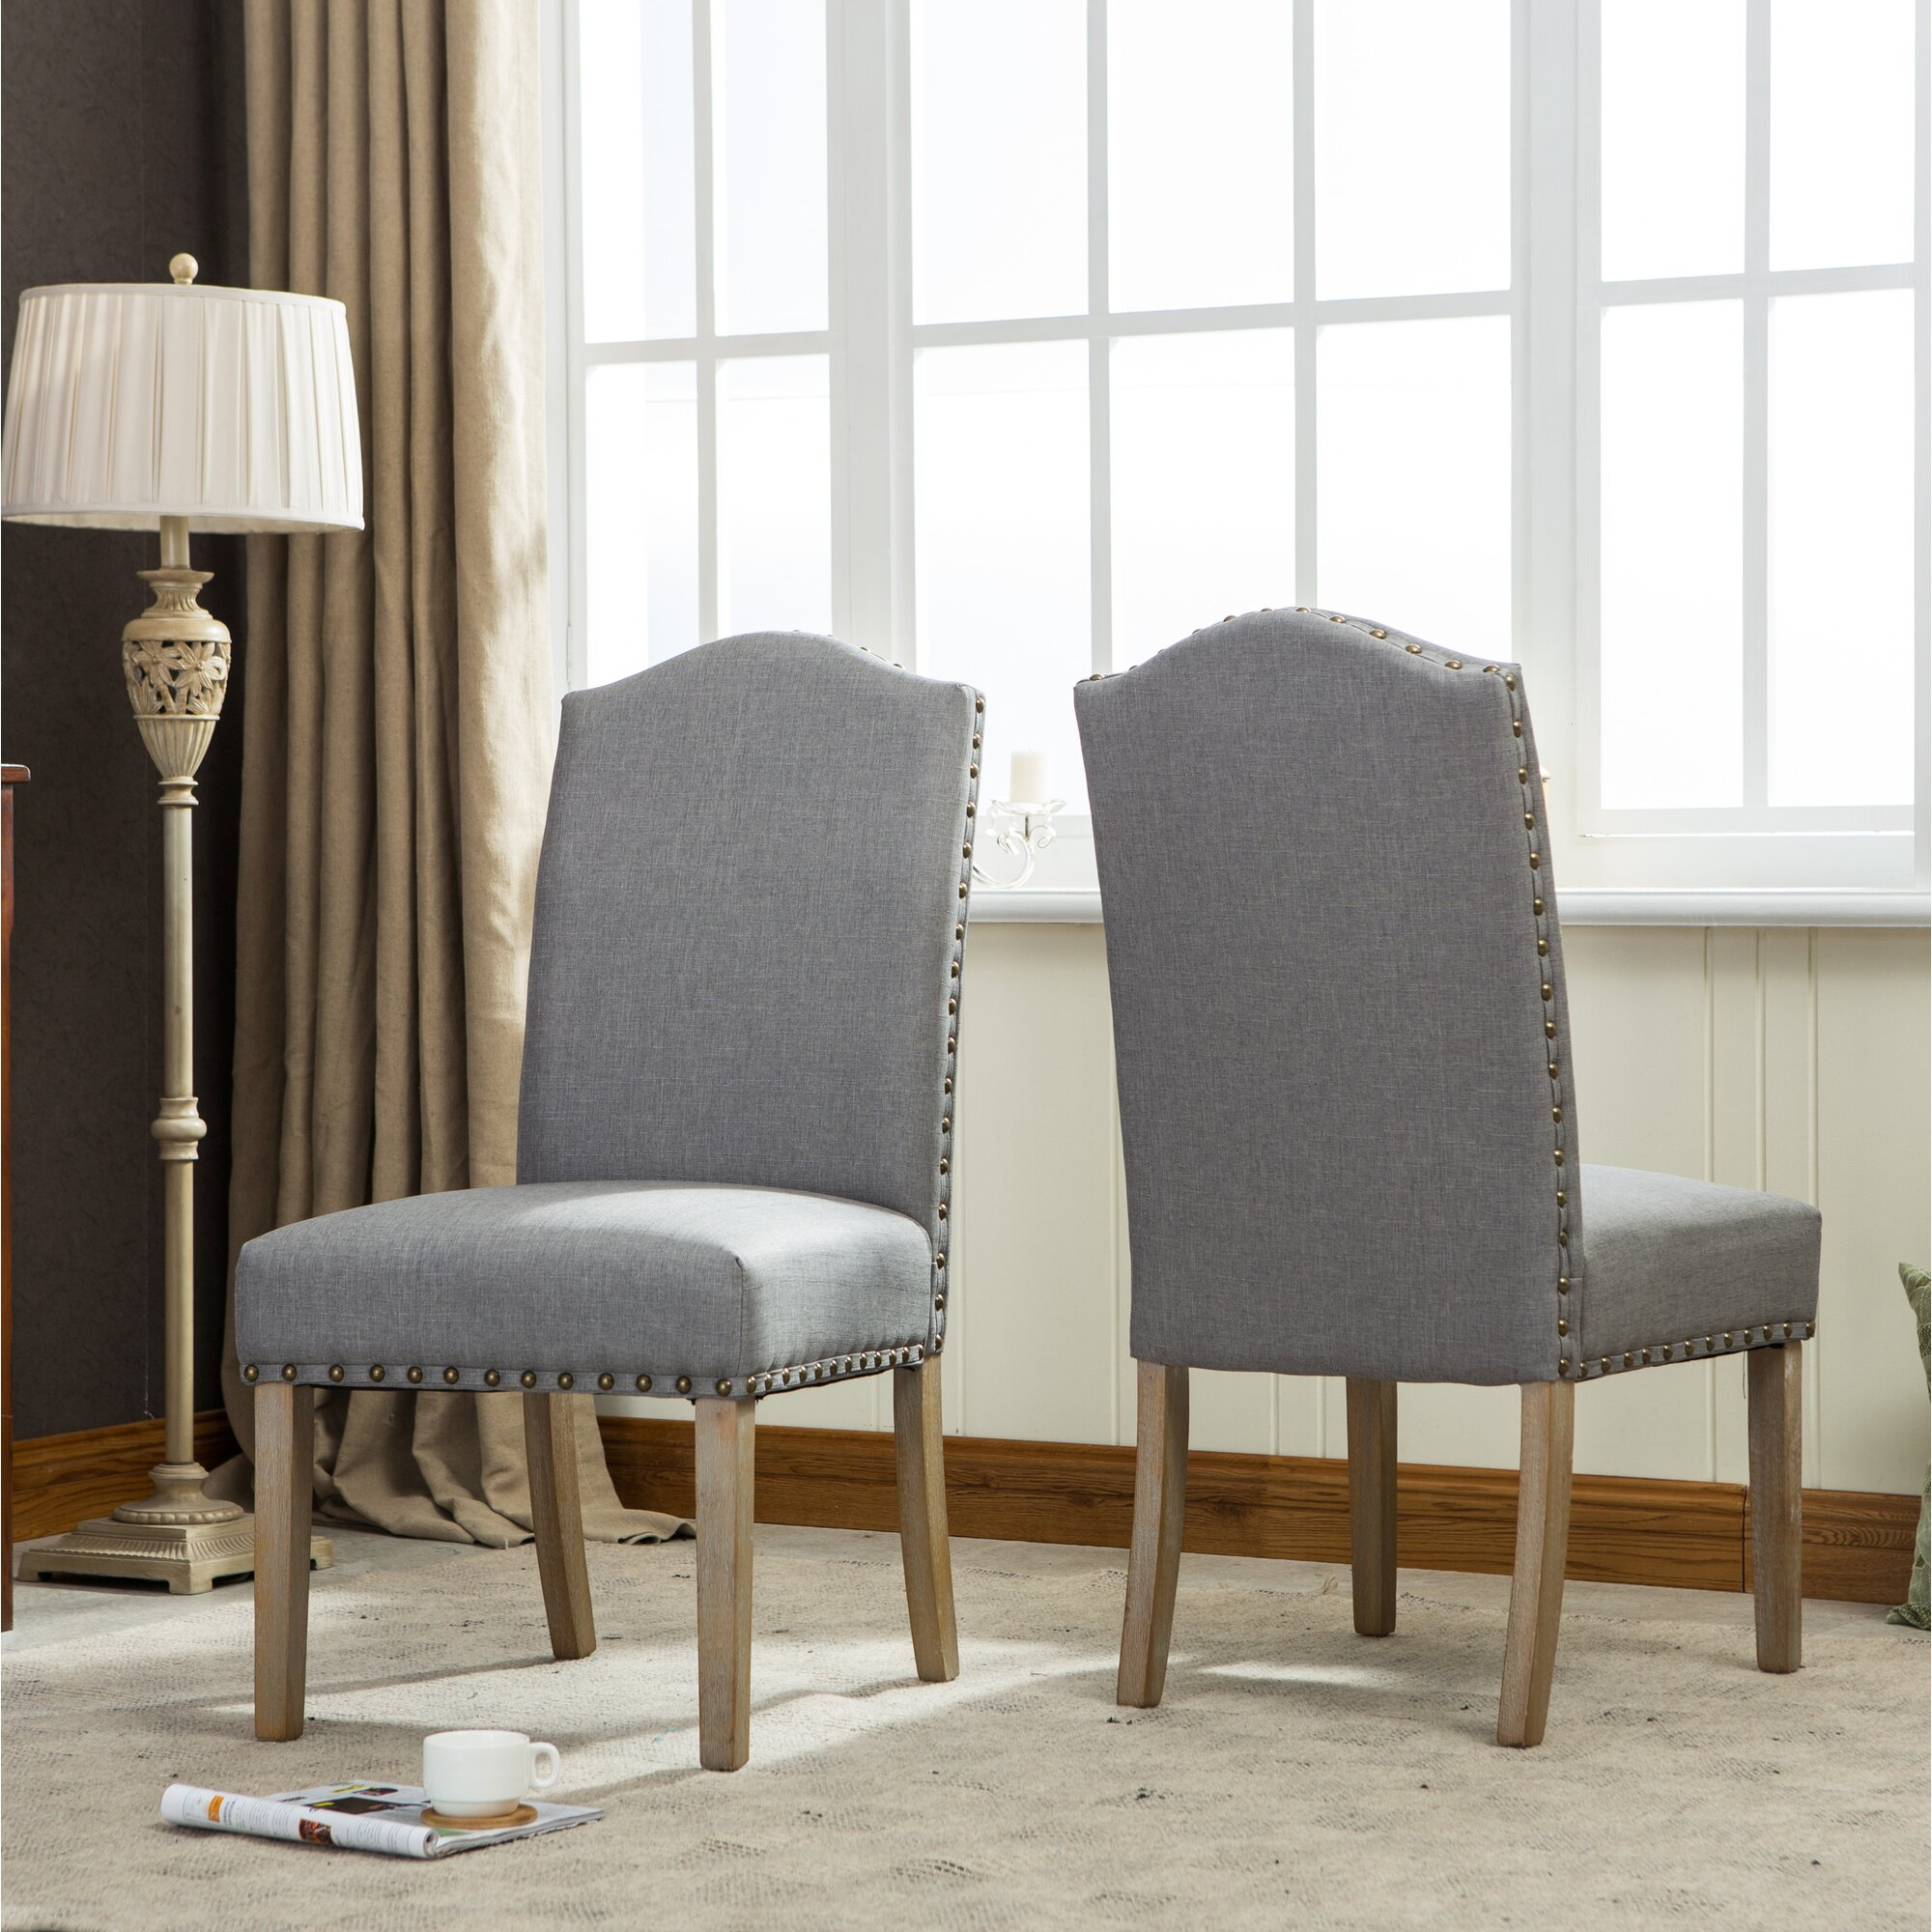 Roundhill furniture mod urban style solid wood nailhead for Urban furniture